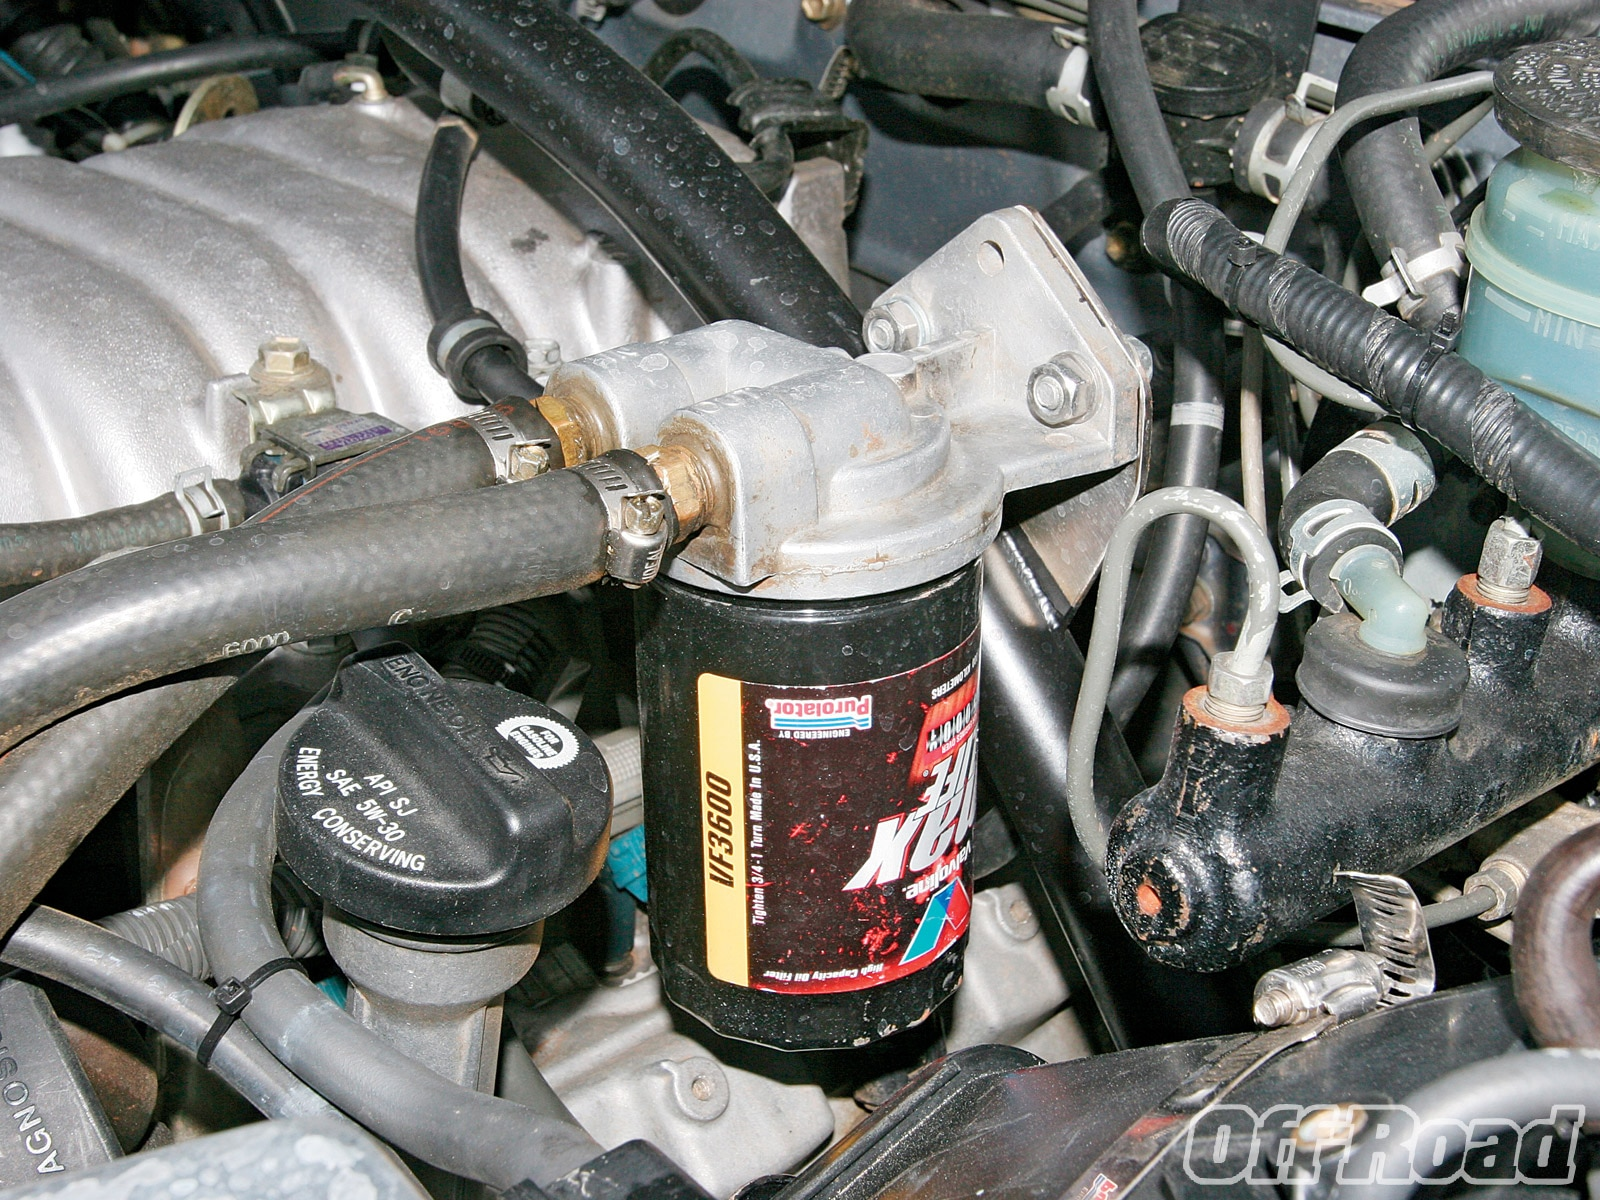 Engine swapping is an exercise in logistics. The oil filter wouldn't fit in the stock position, so Will used a remote mounting kit and placed the filter on the shock hoop crossbar.